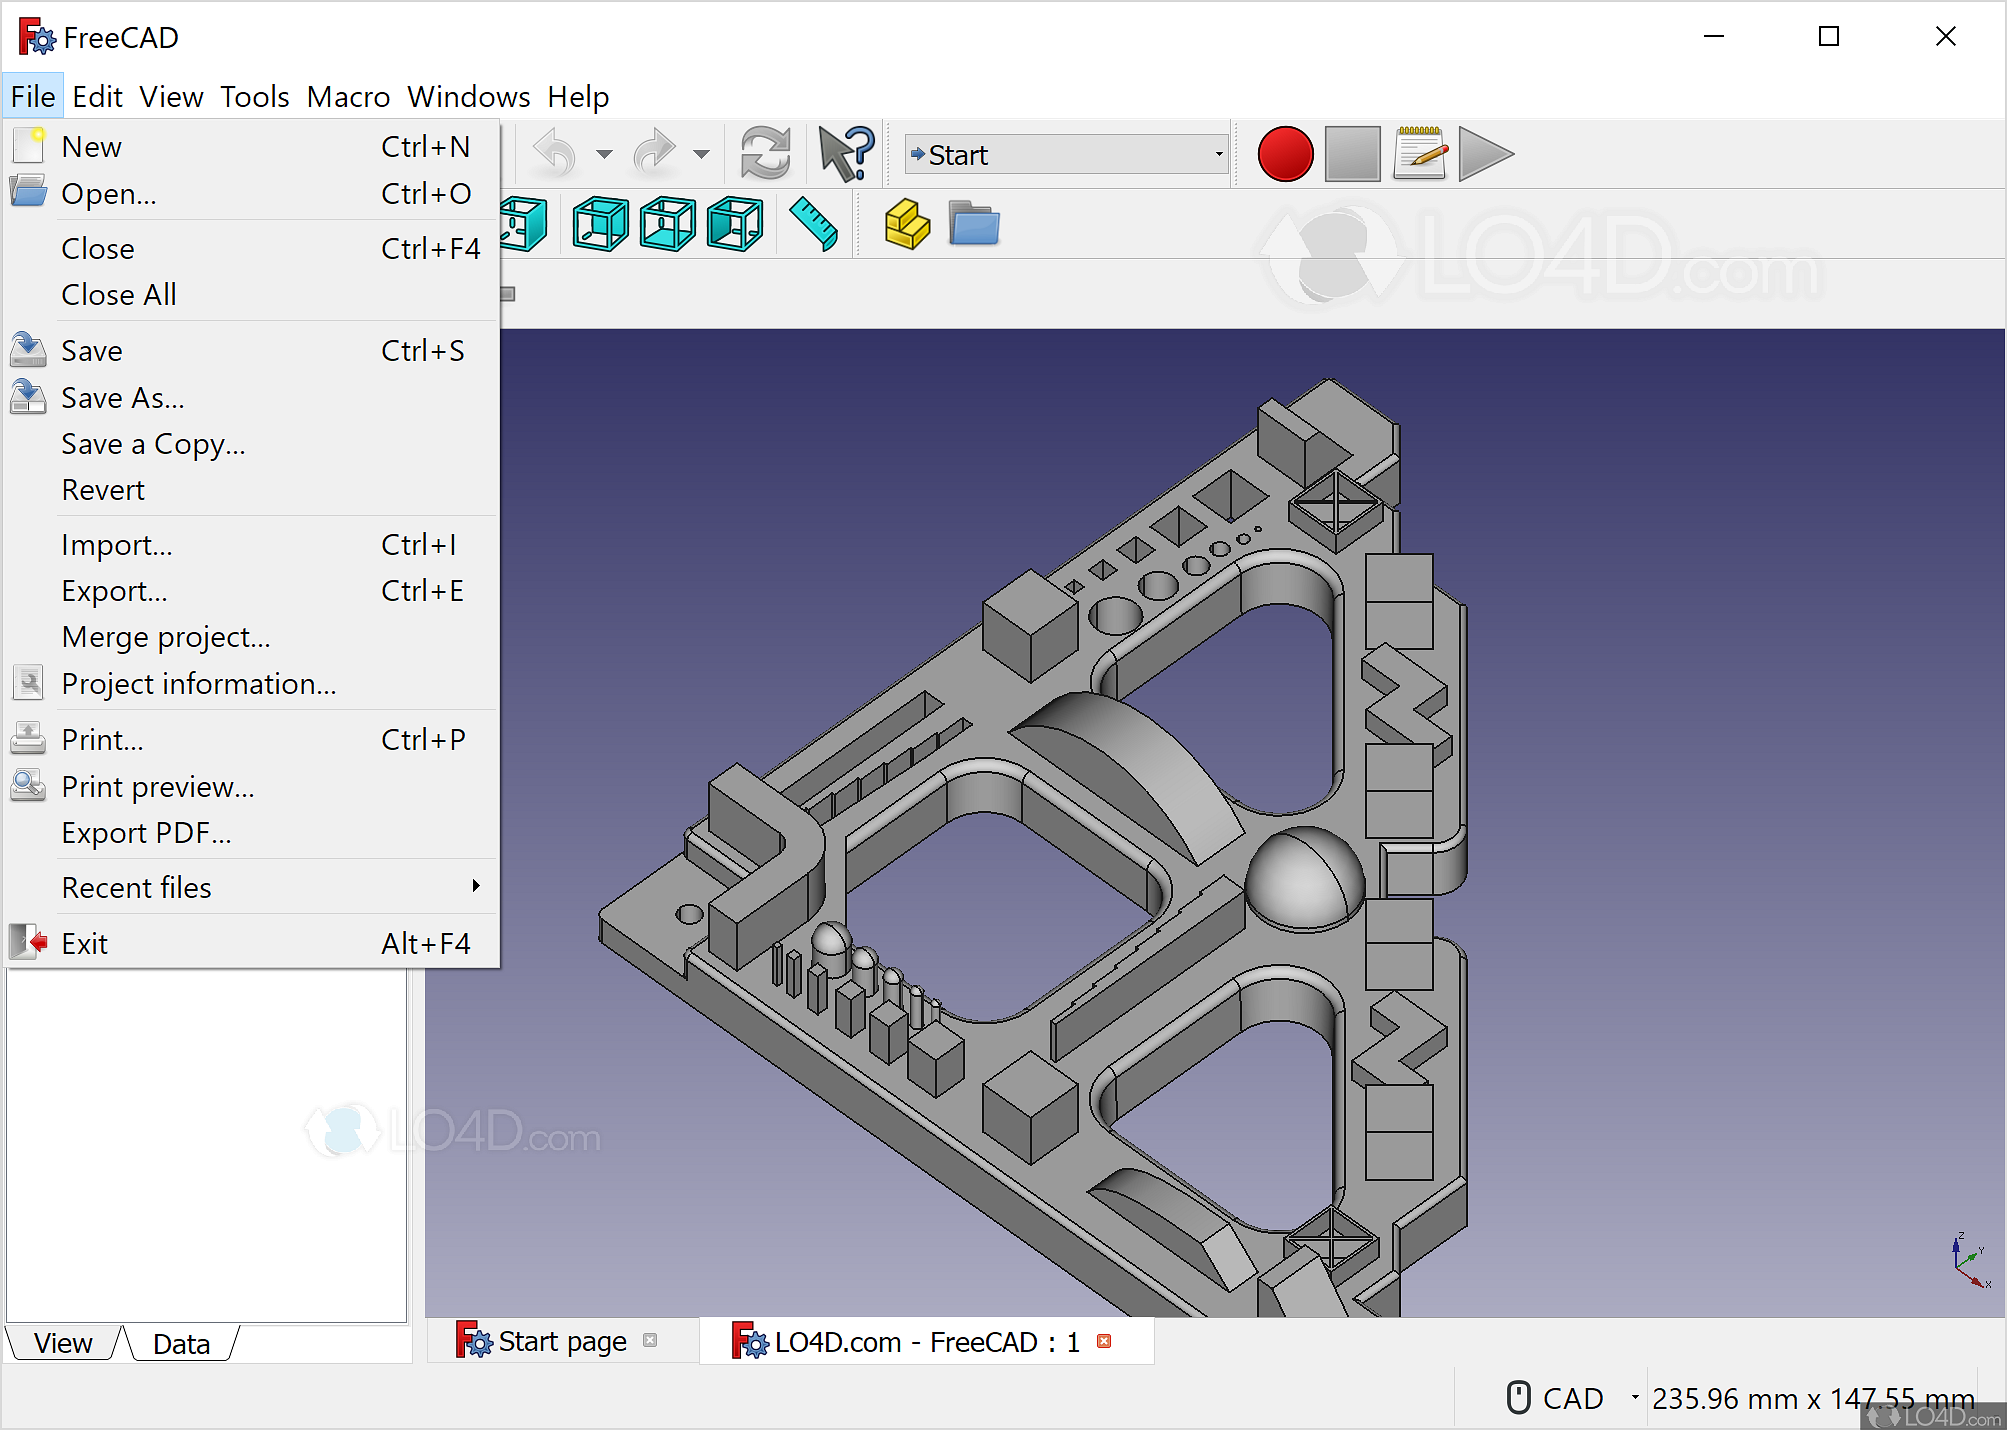 freecad windows 7